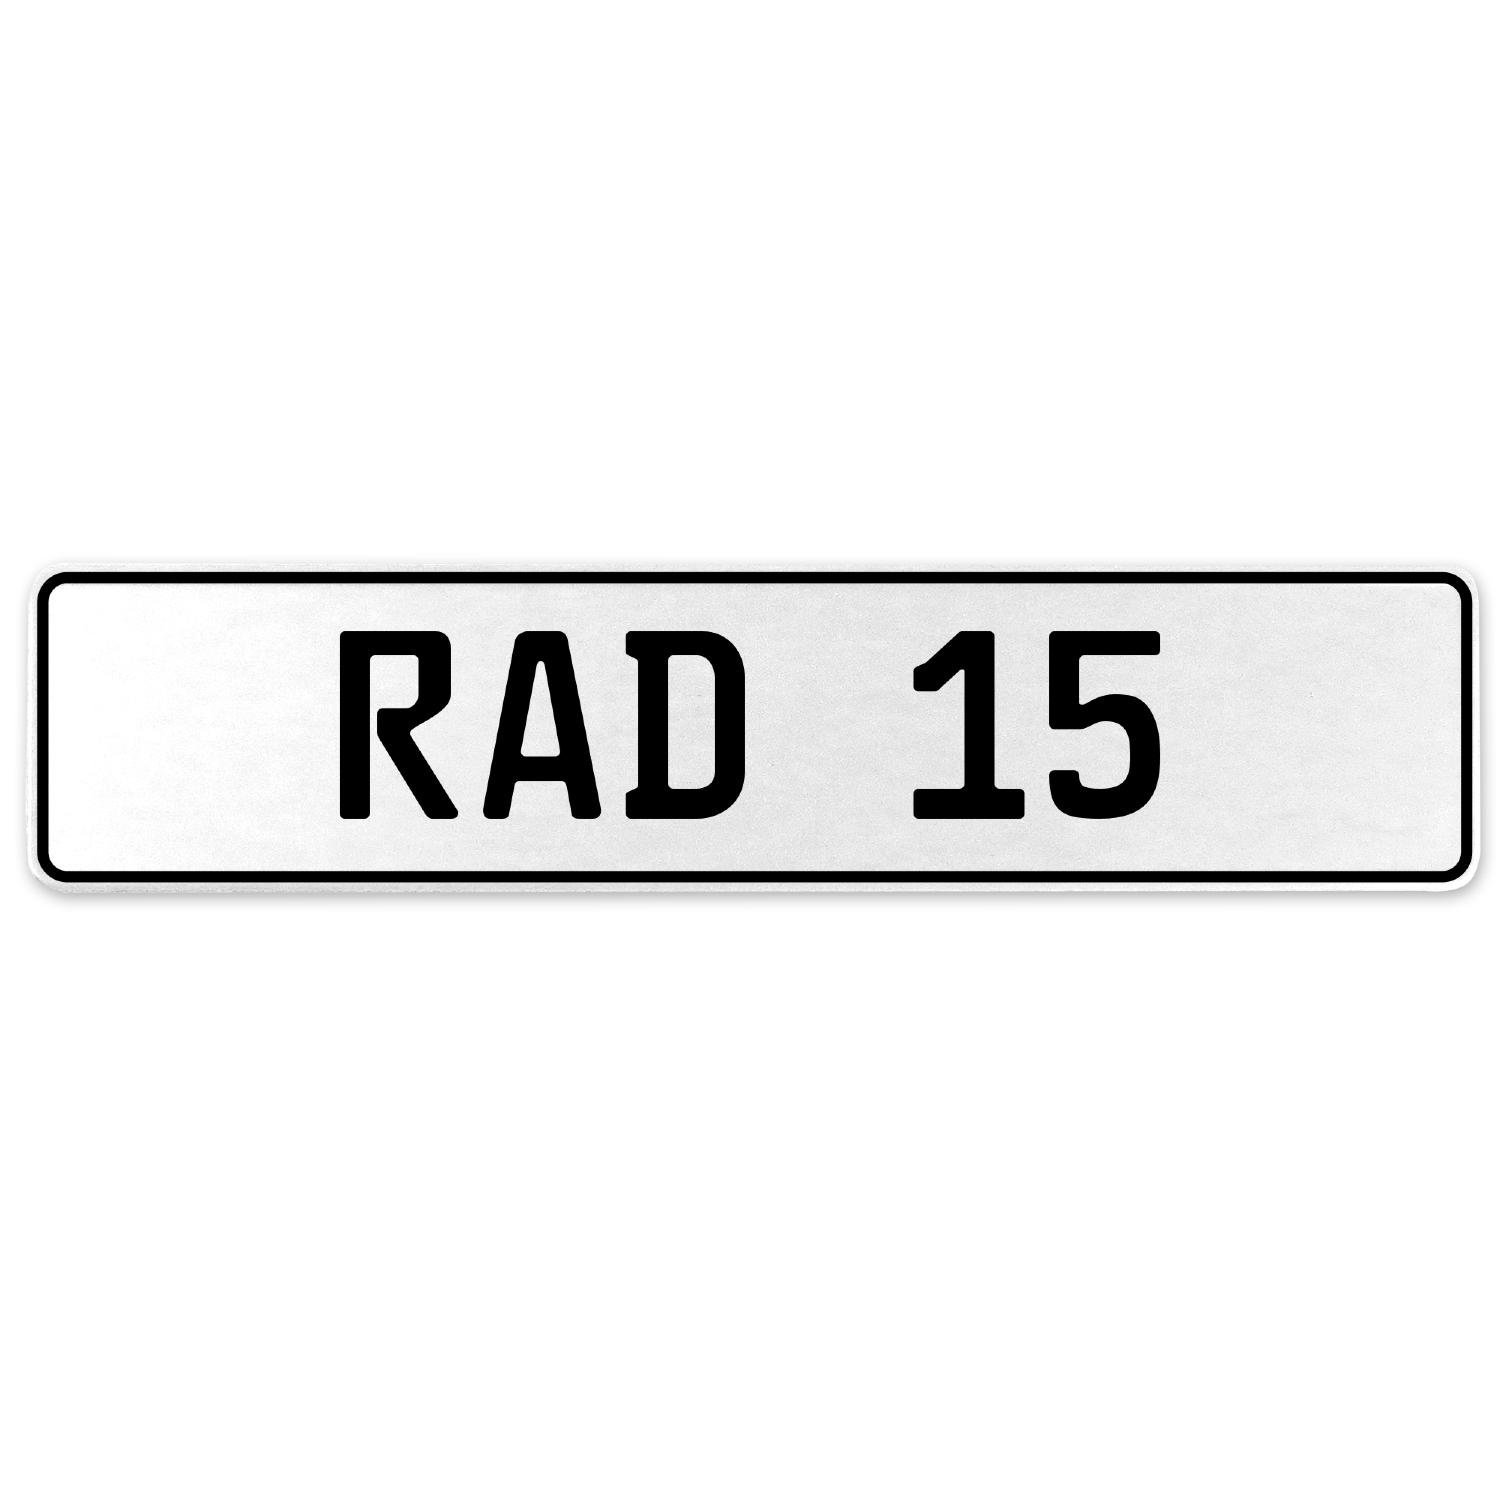 Vintage Parts 553919 RAD 15 White Stamped Aluminum European License Plate